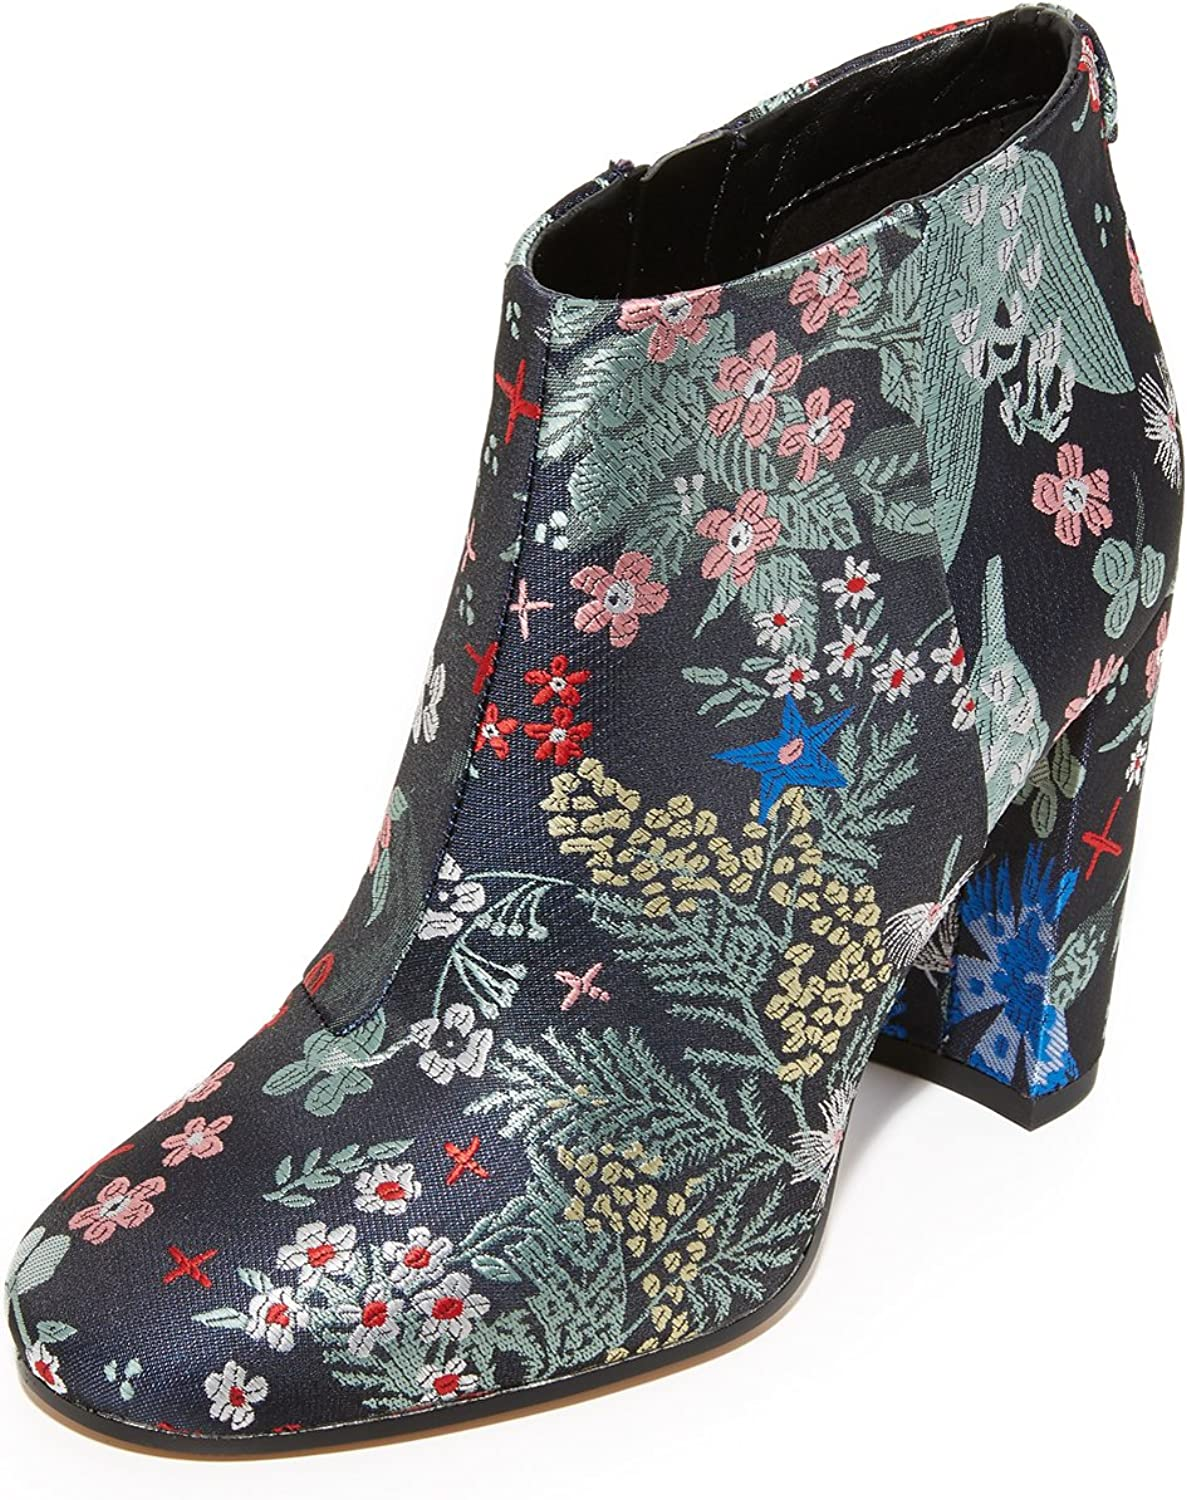 Sam Edelman Womens Cambell Ankle Bootie